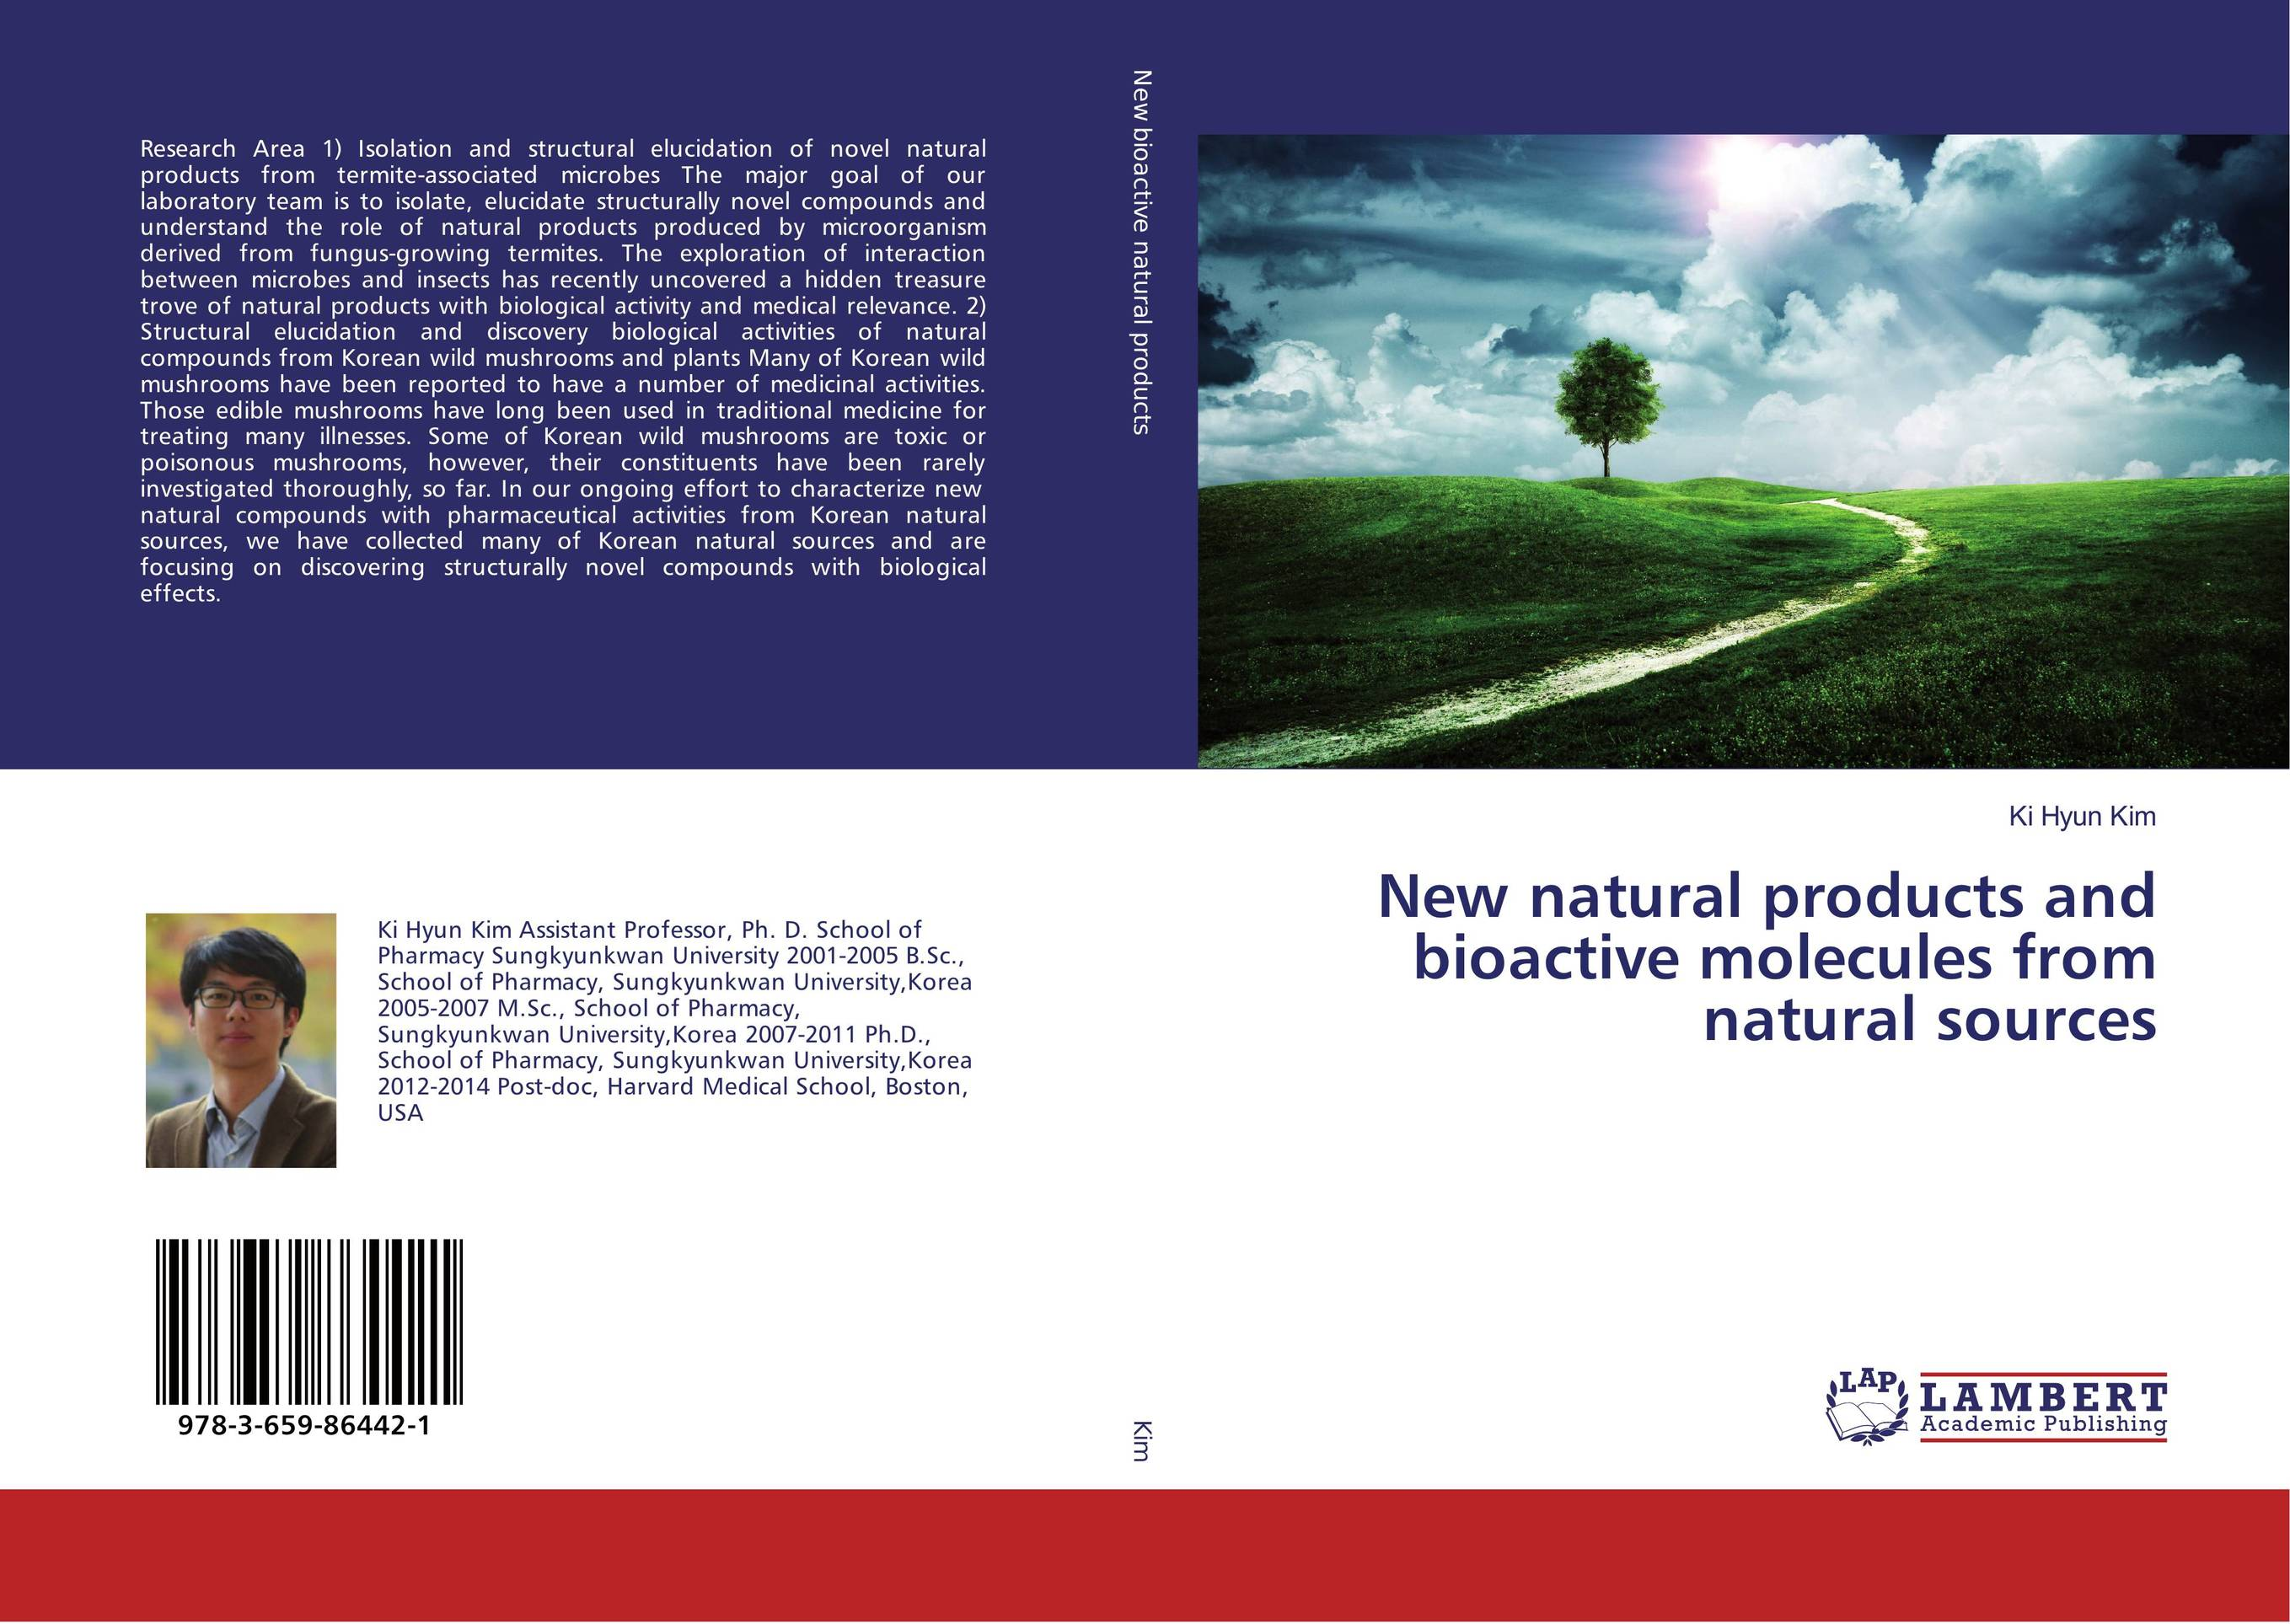 New natural products and bioactive molecules from natural sources discovery of natural antioxidants from sudanese medicinal plants